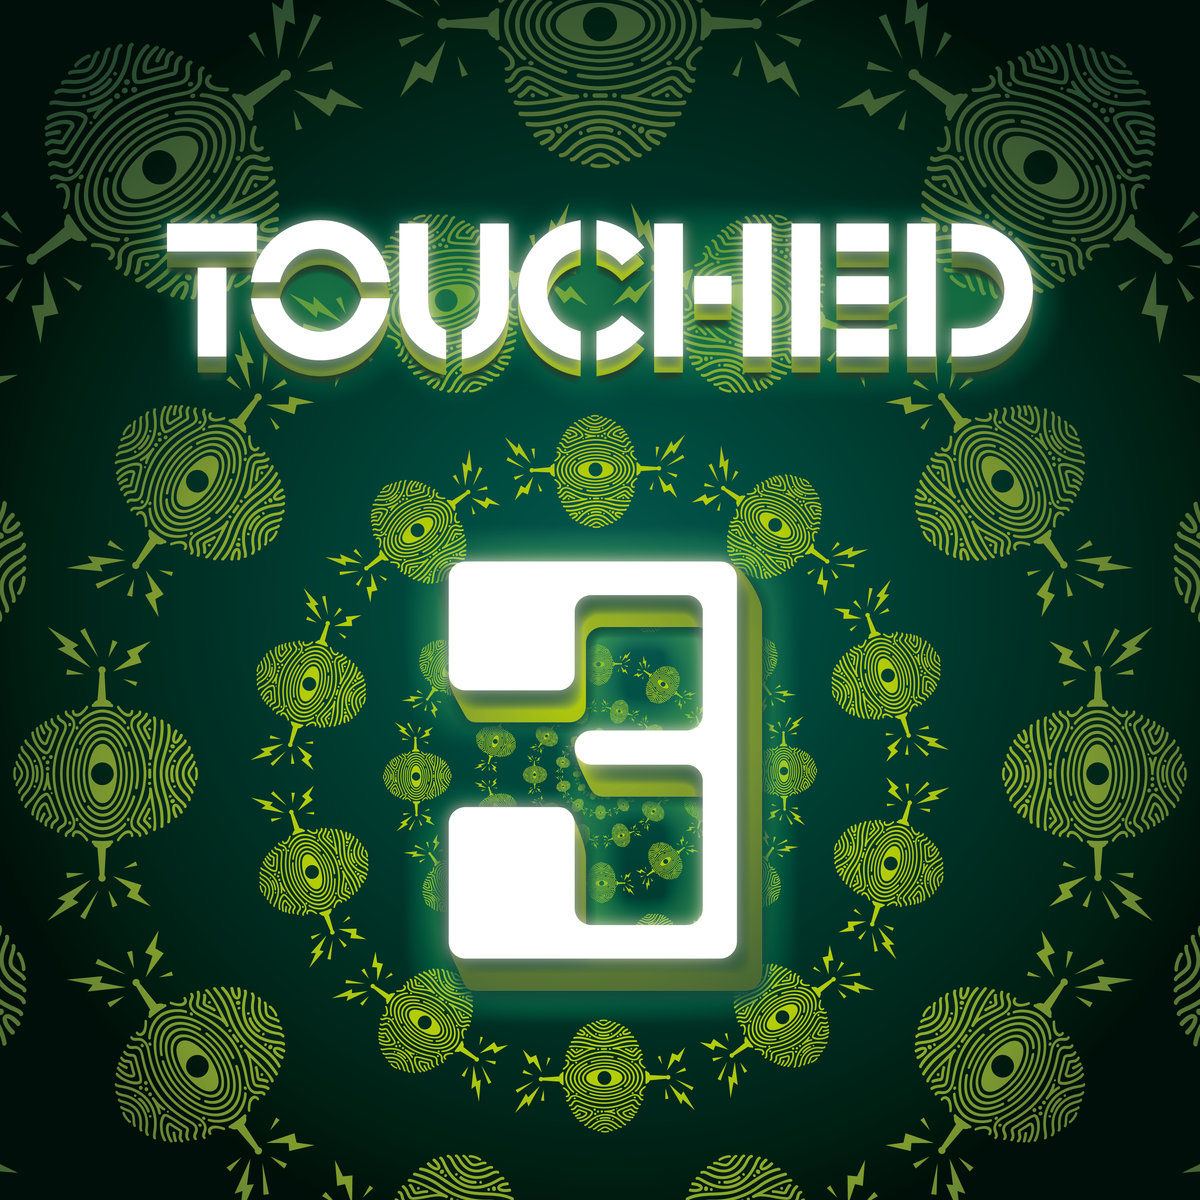 Touched 3 (cover art)